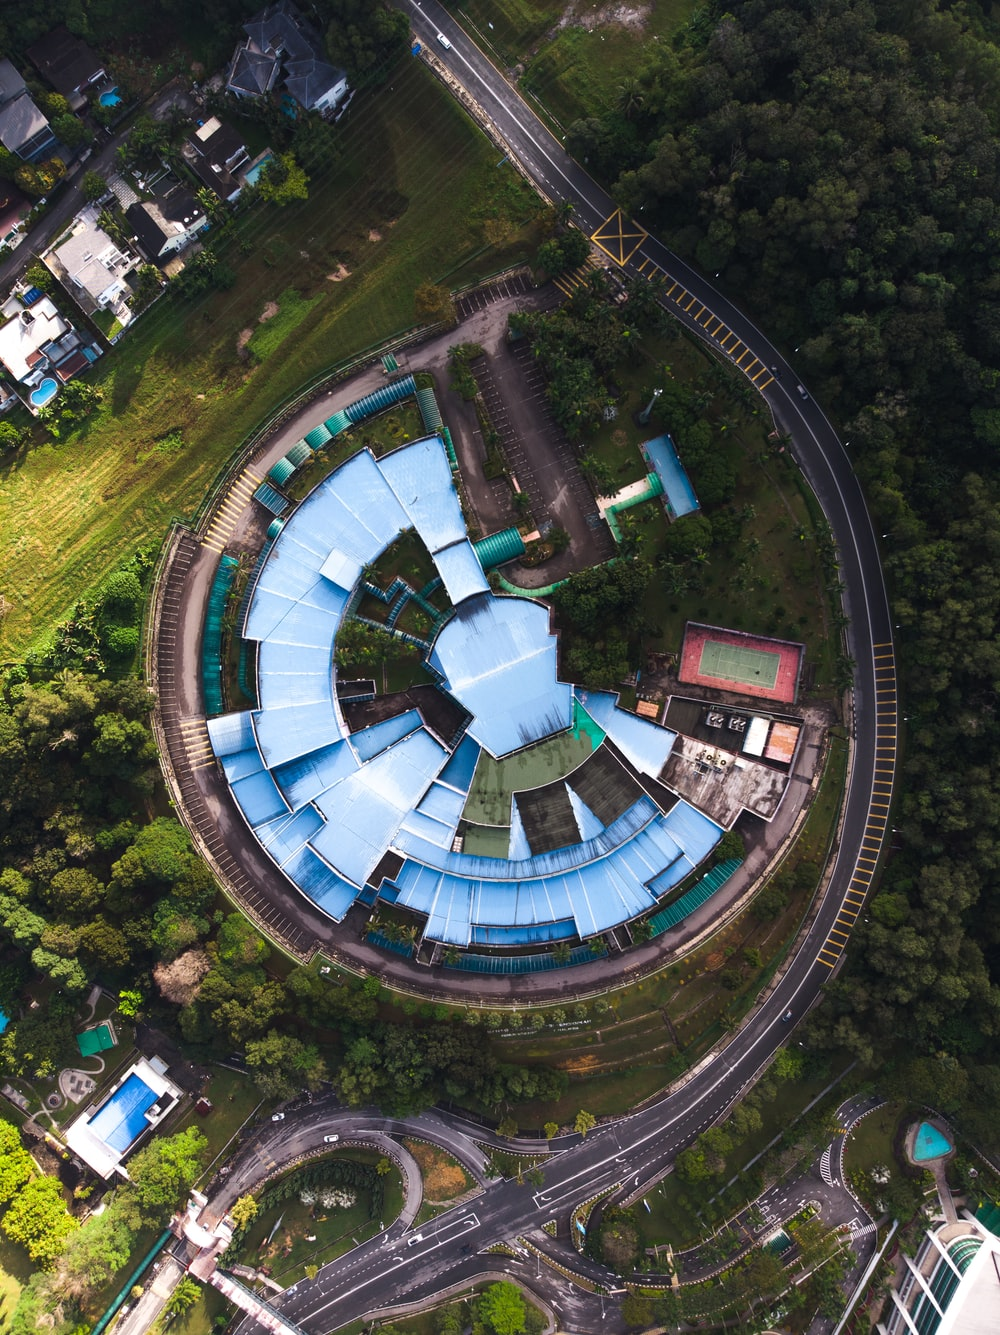 aerial photograph of blue structure on hill